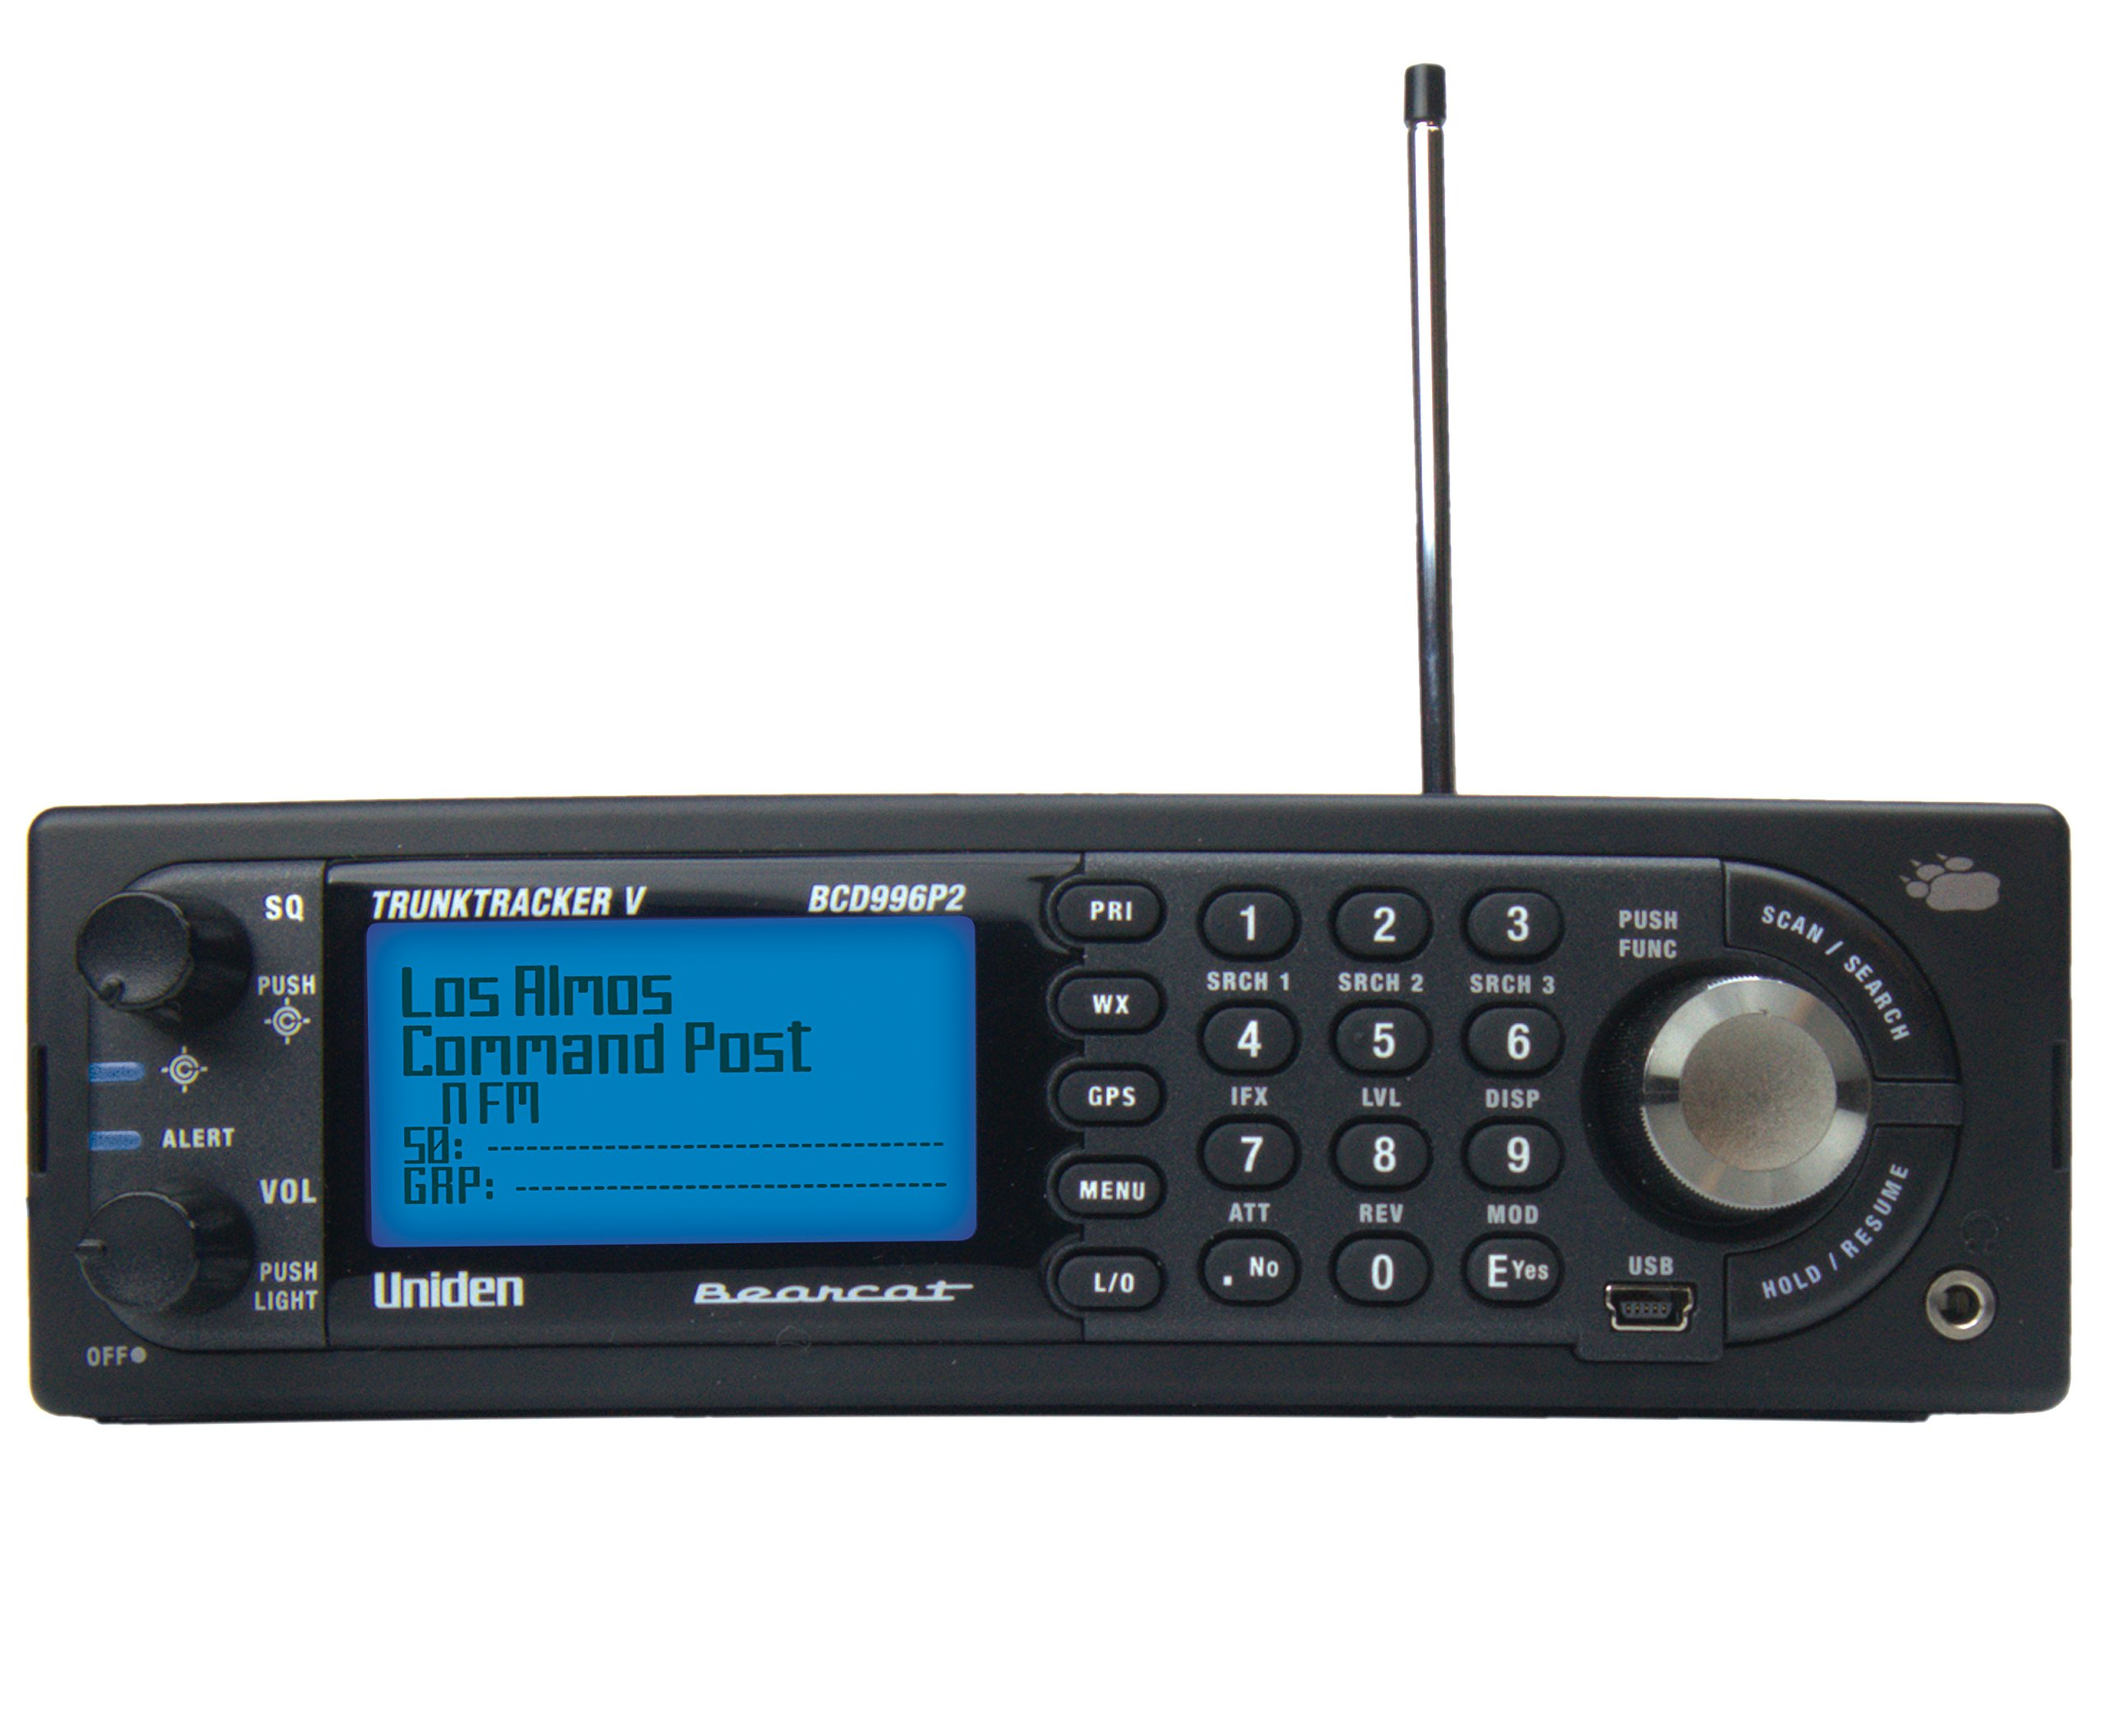 Uniden BCD996P2 Base/Mobile PROGRAMMED Phase II Digital Scanner by Uniden (Image #2)